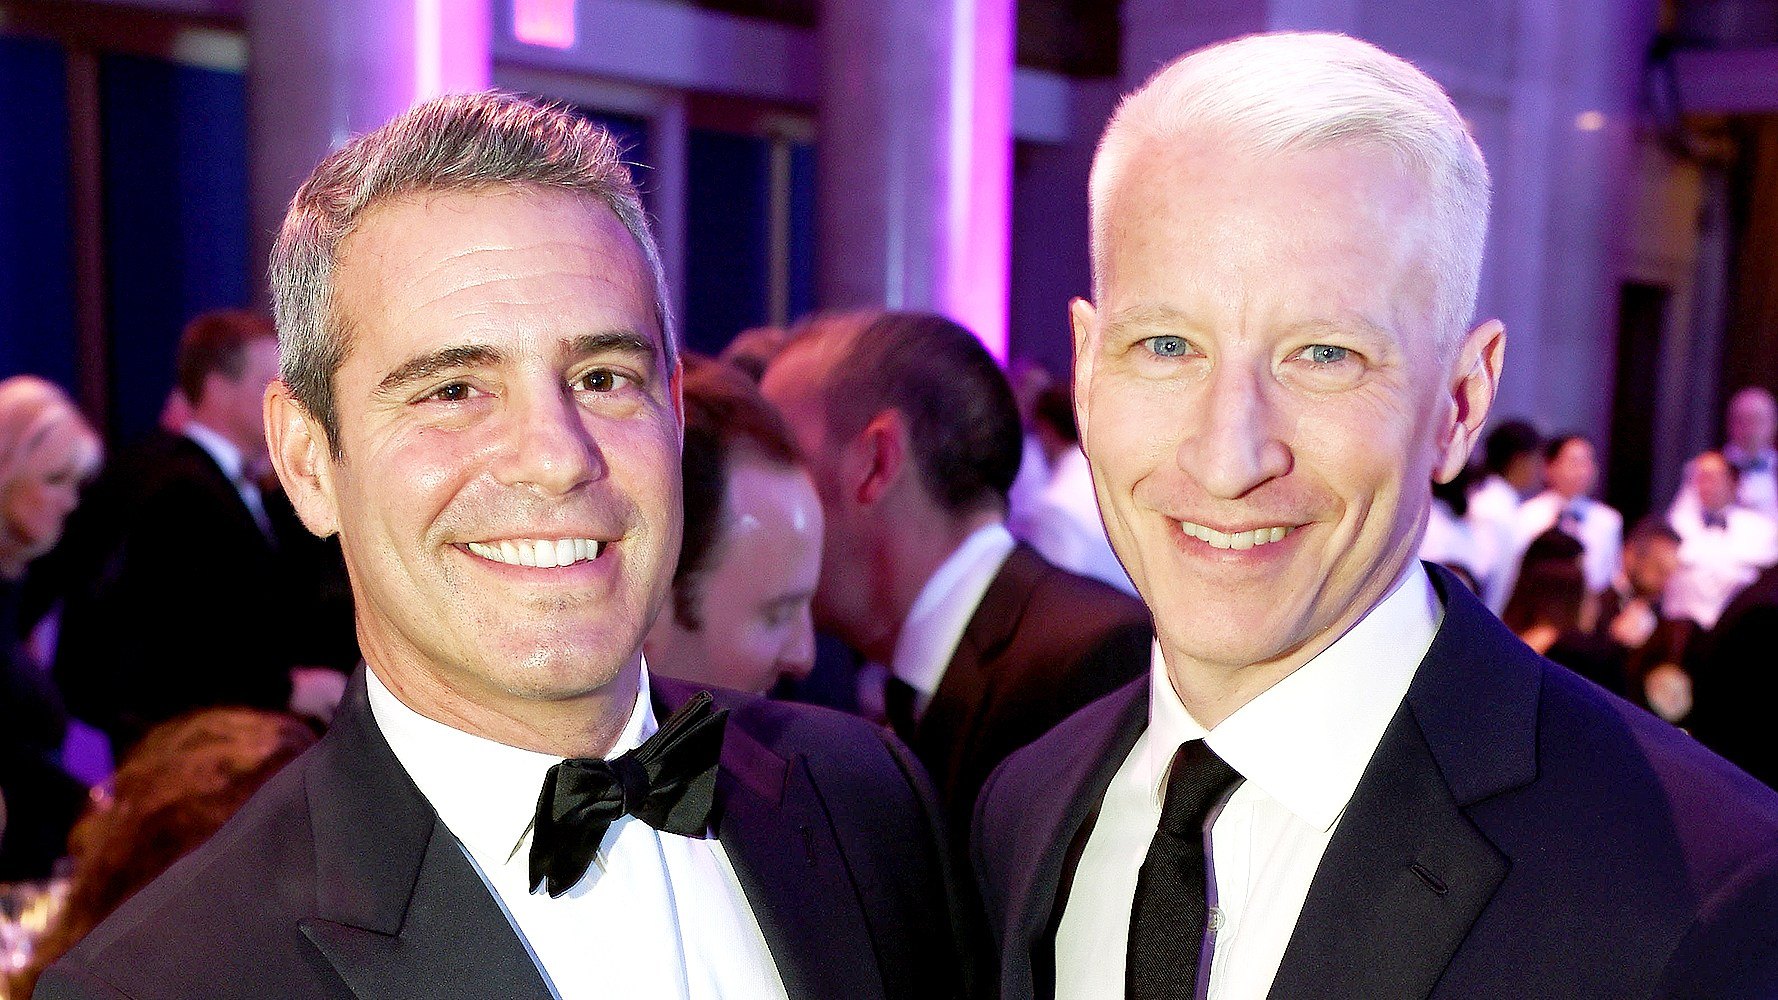 Andy Cohen and Anderson Cooper attend Elton John AIDS Foundation's 14th Annual An Enduring Vision Benefit at Cipriani Wall Street on November 2, 2015 in New York City.